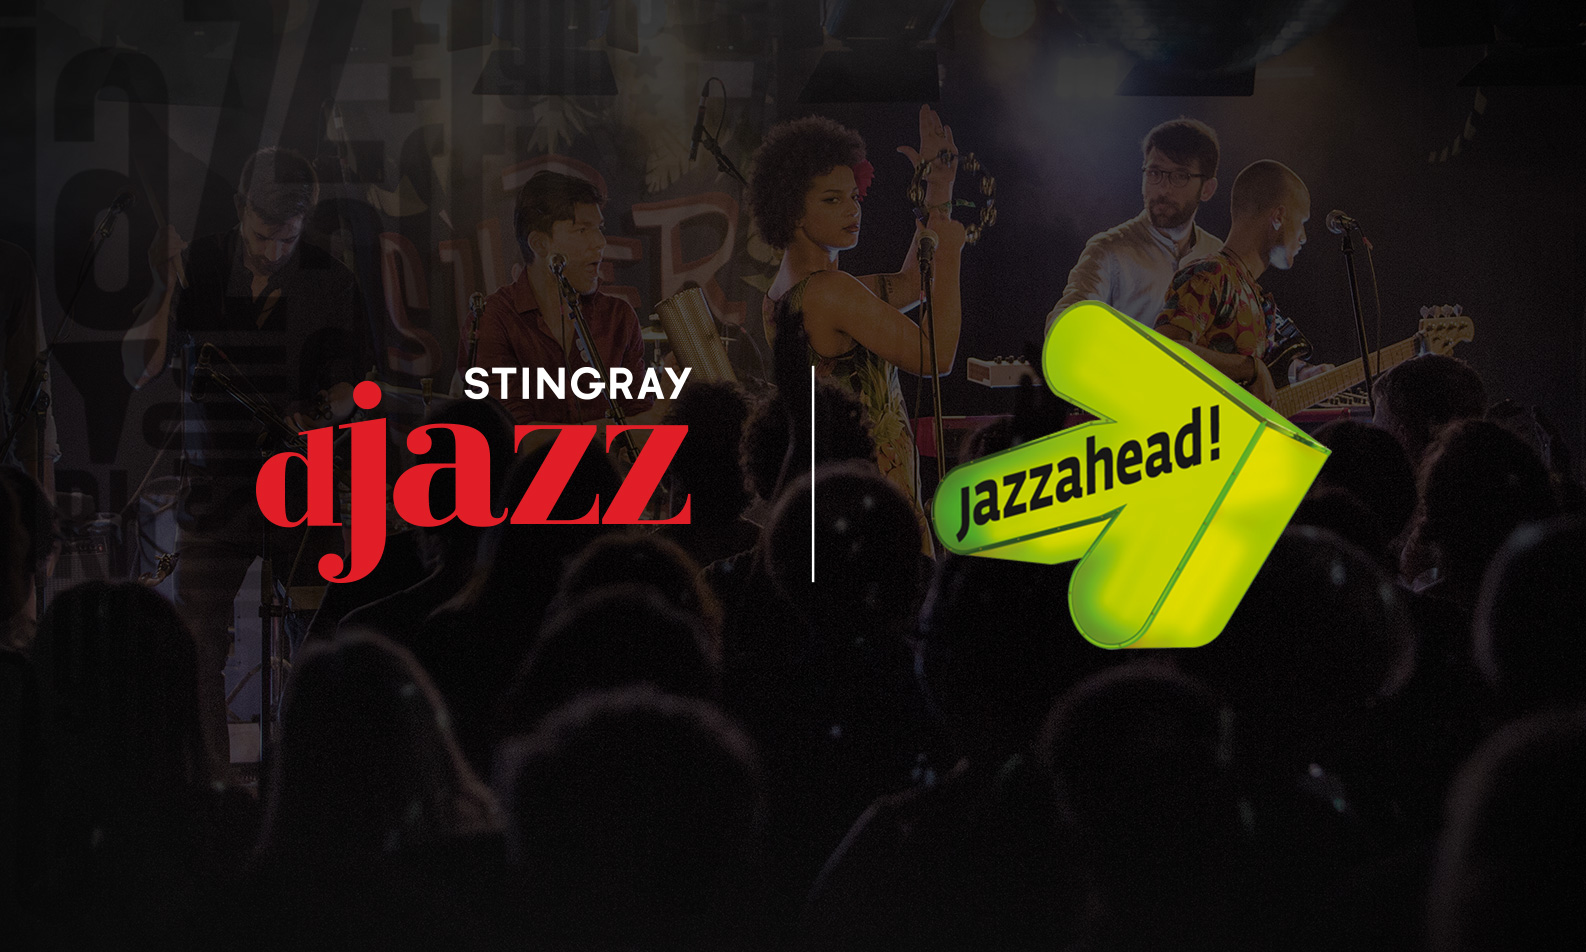 Follow Stingray DJAZZ at Jazzahead! Festival